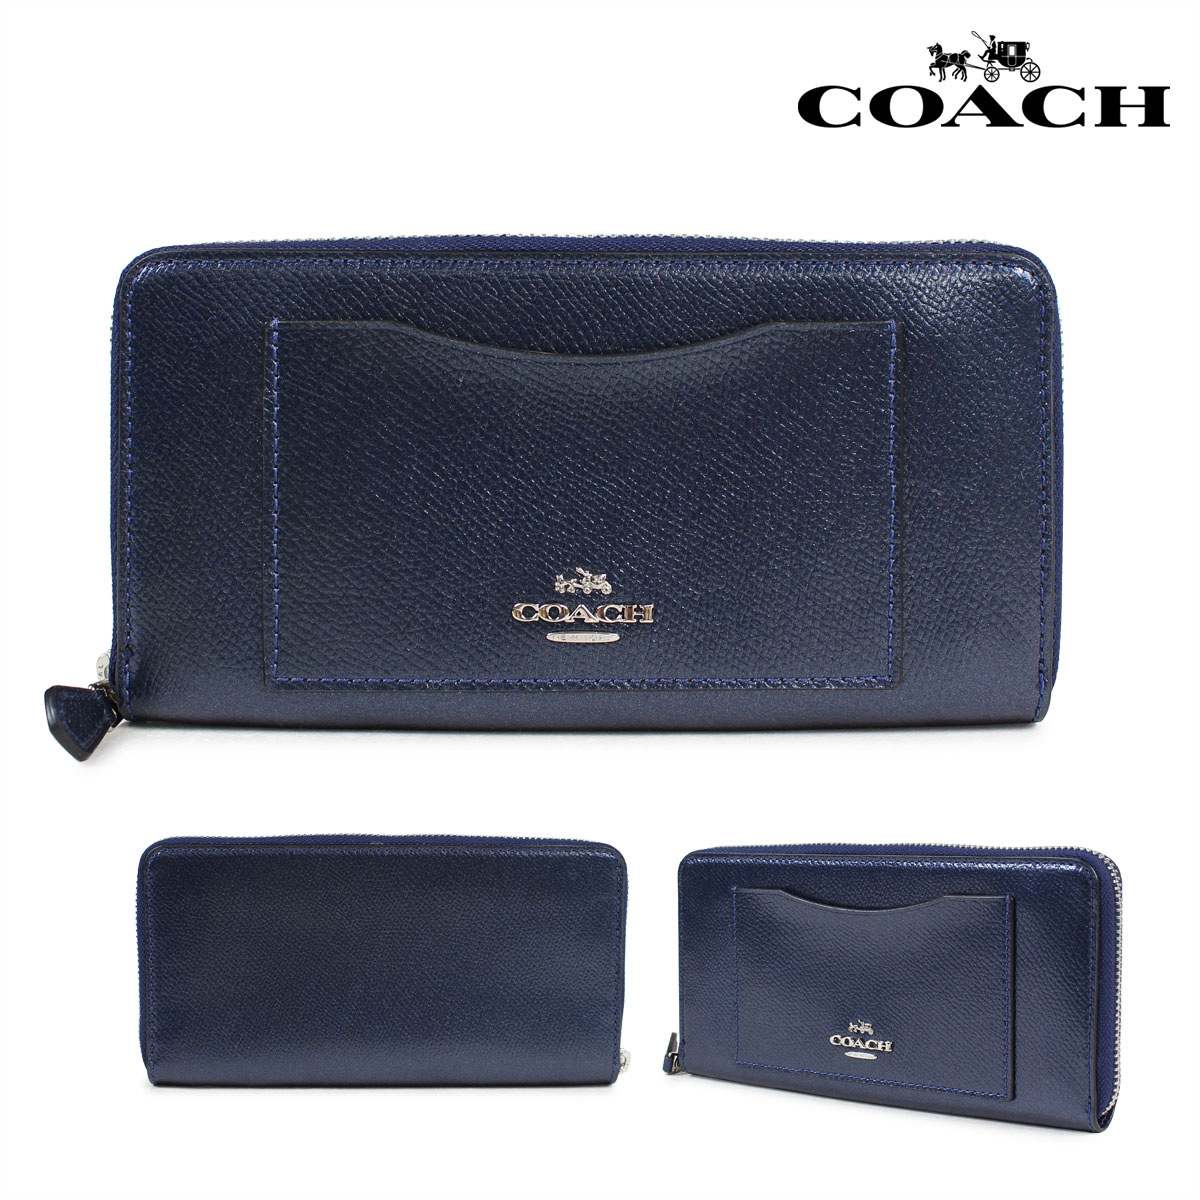 81ead1e64 COACH CROSS GRAIN LEATHER ACCORDION ZIP AROUND coach wallet long wallet  Lady's round fastener leather navy ...